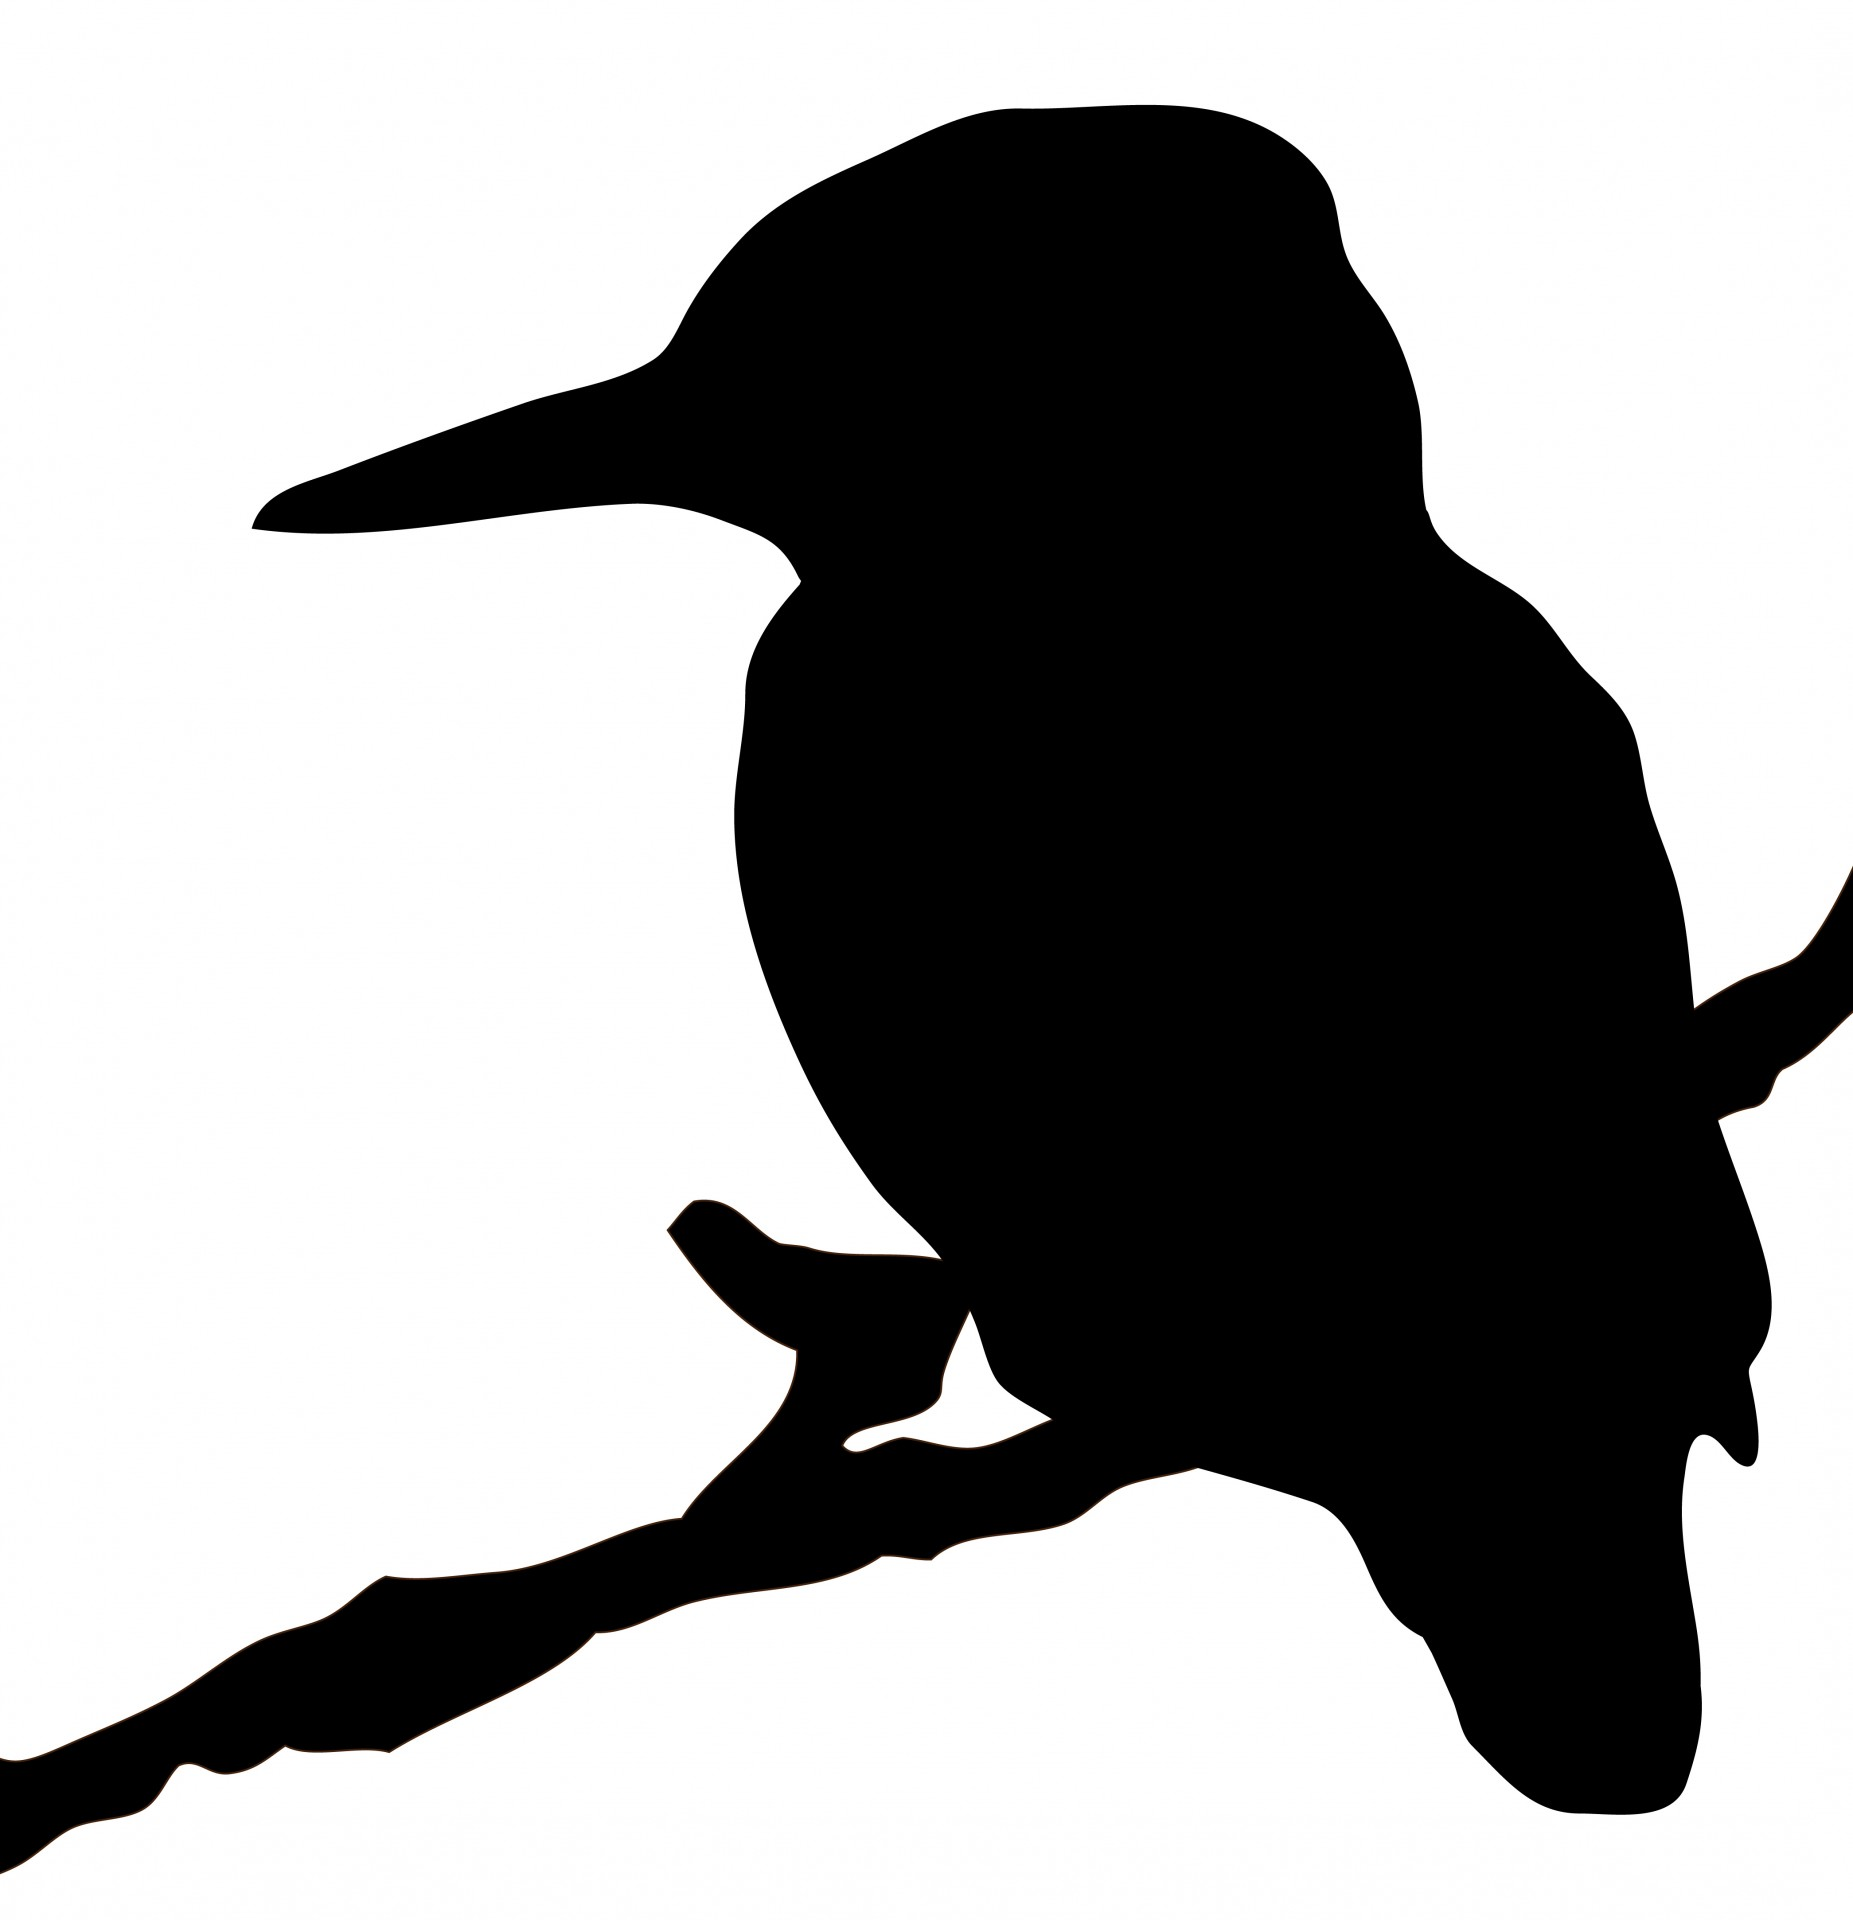 hight resolution of 1853x1920 kingfisher bird silhouette clipart free stock photo